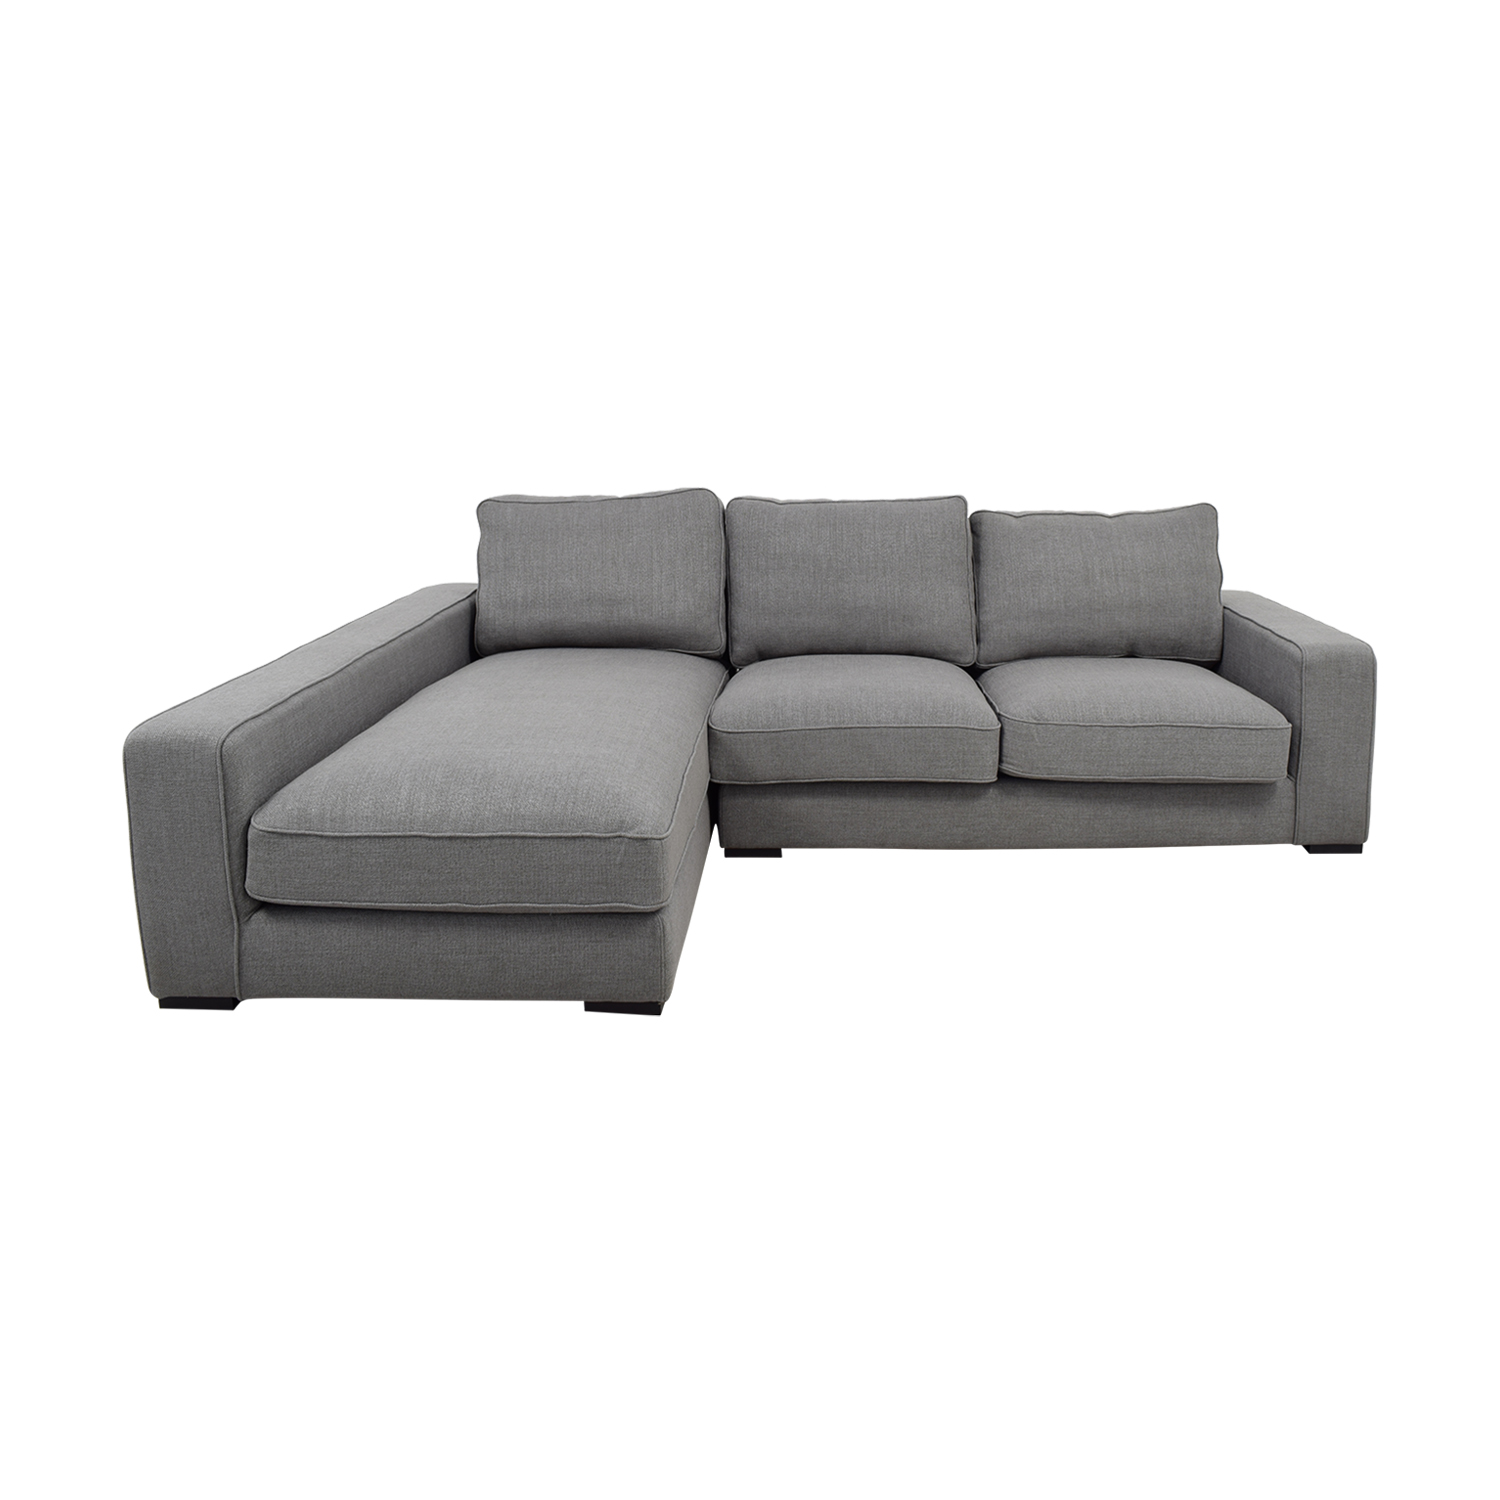 Ainsley Grey Left Chaise Sectional Sofas